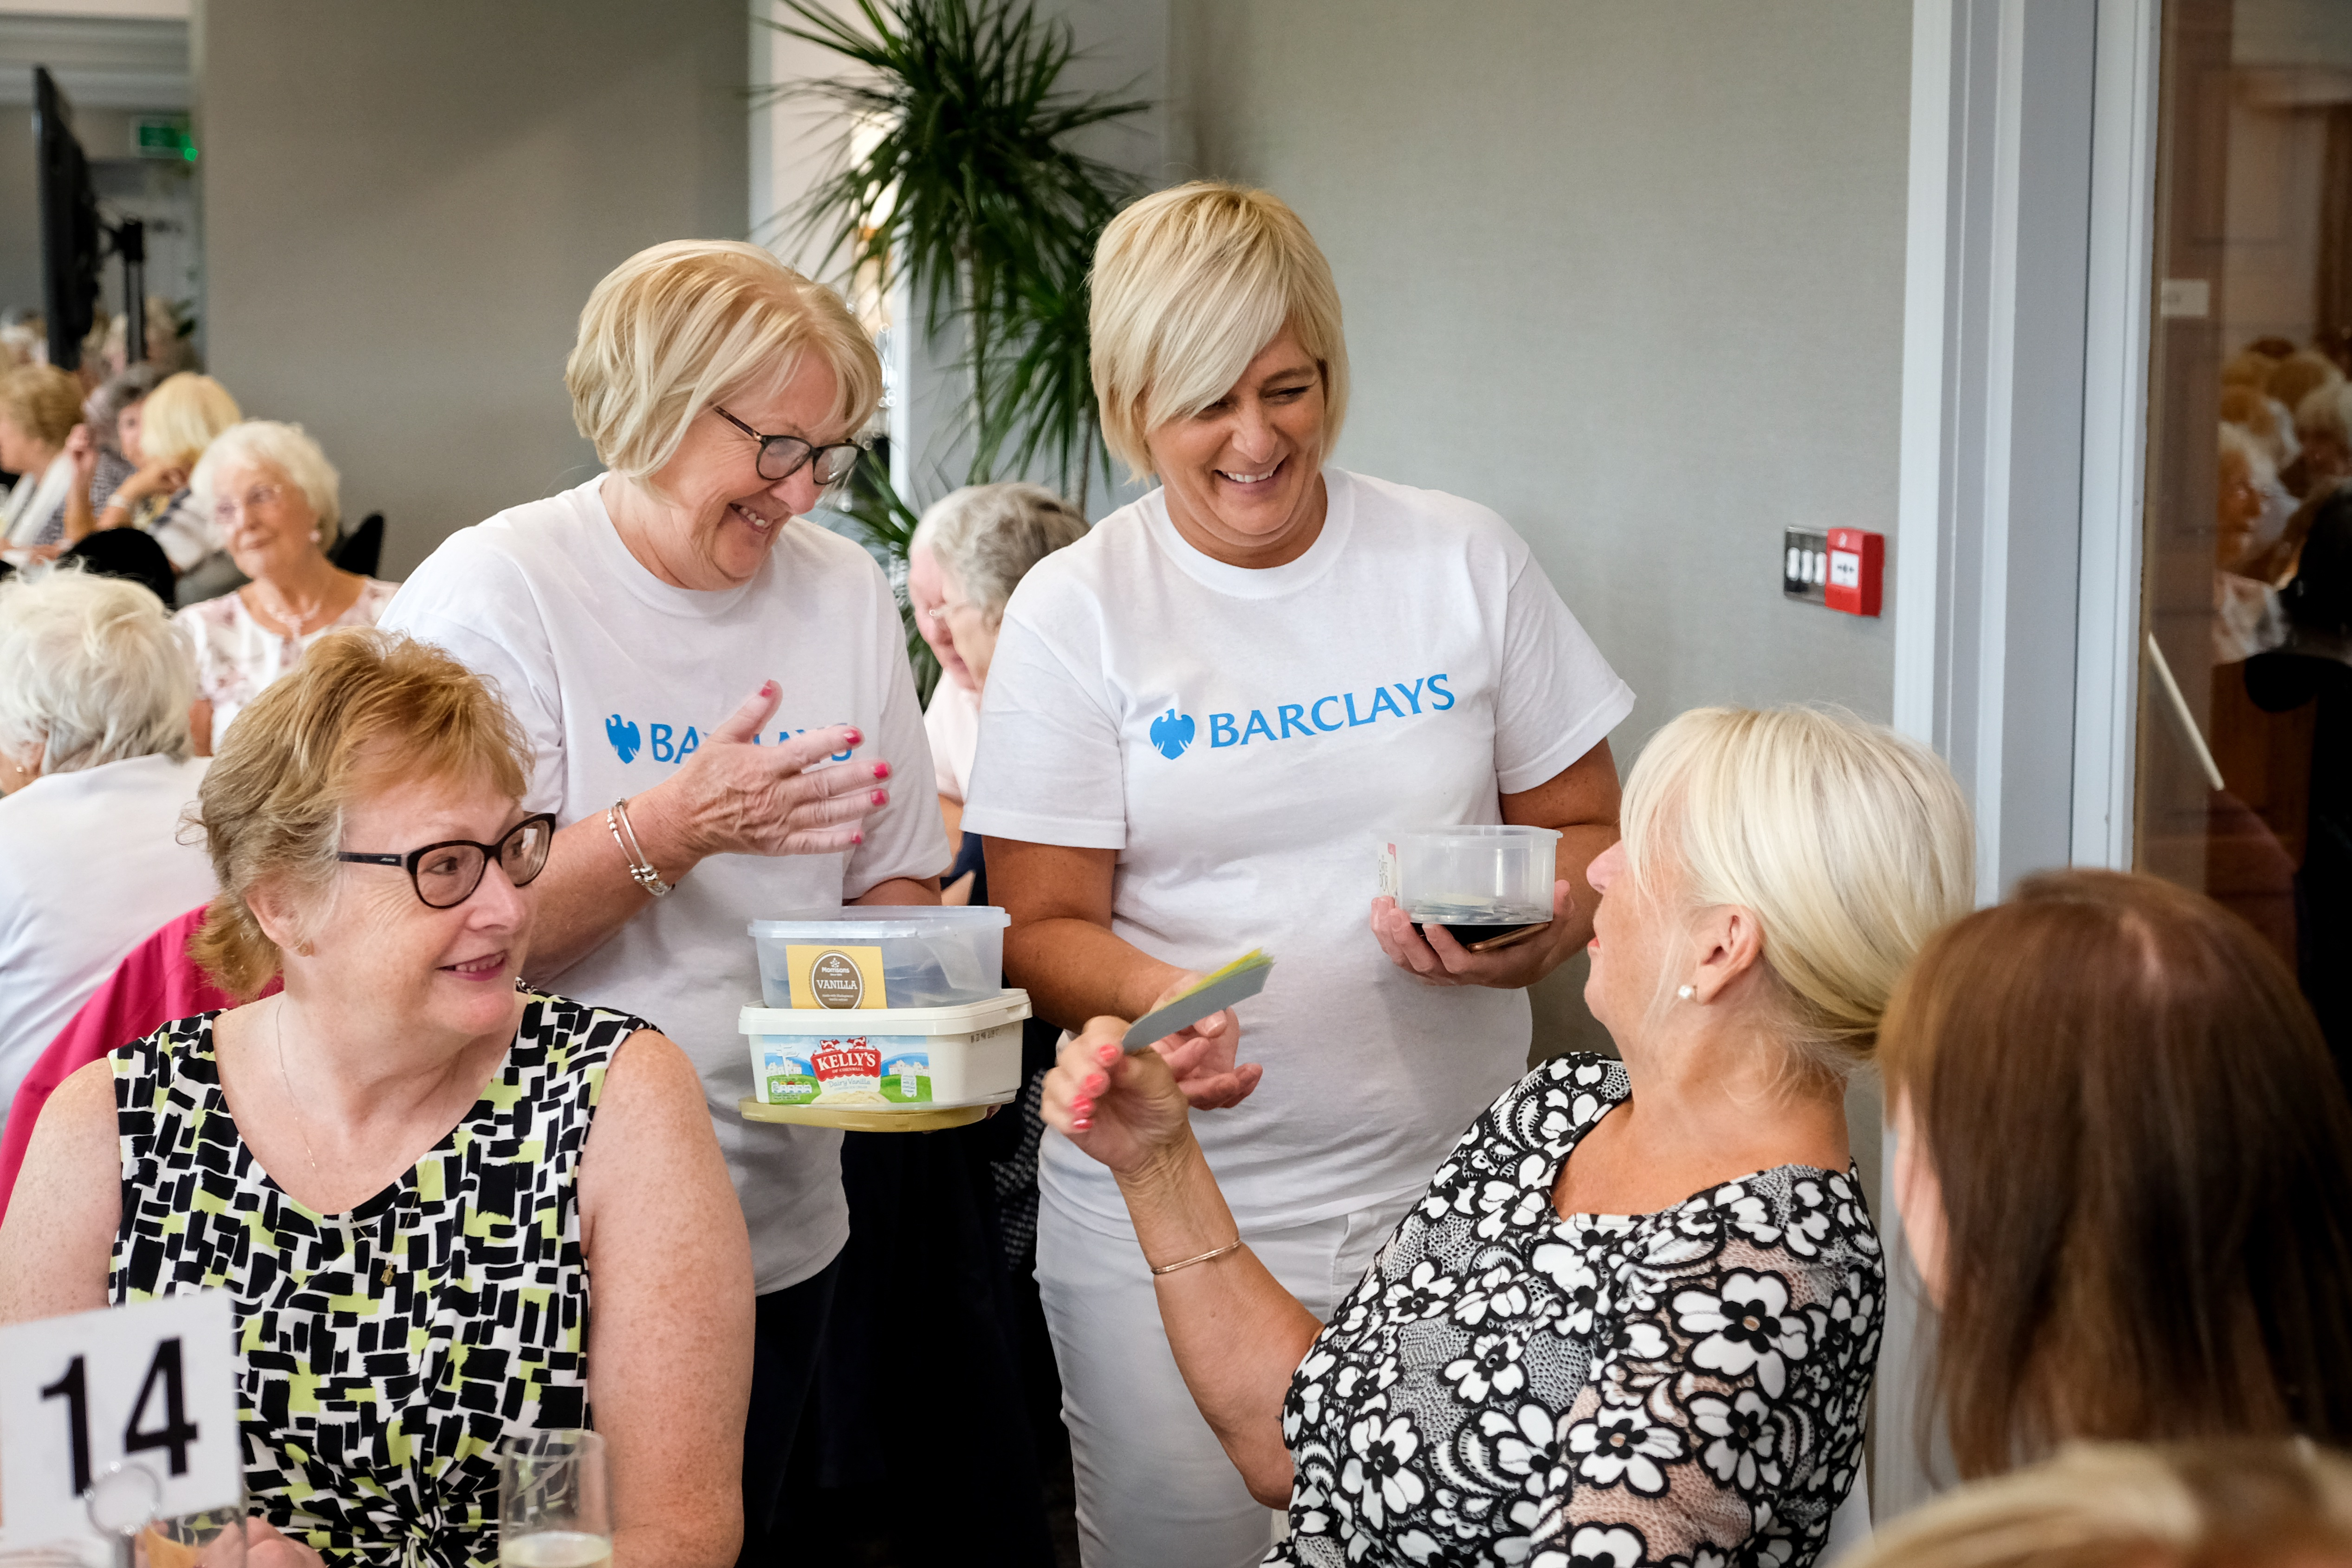 Barclays employees helping at an event